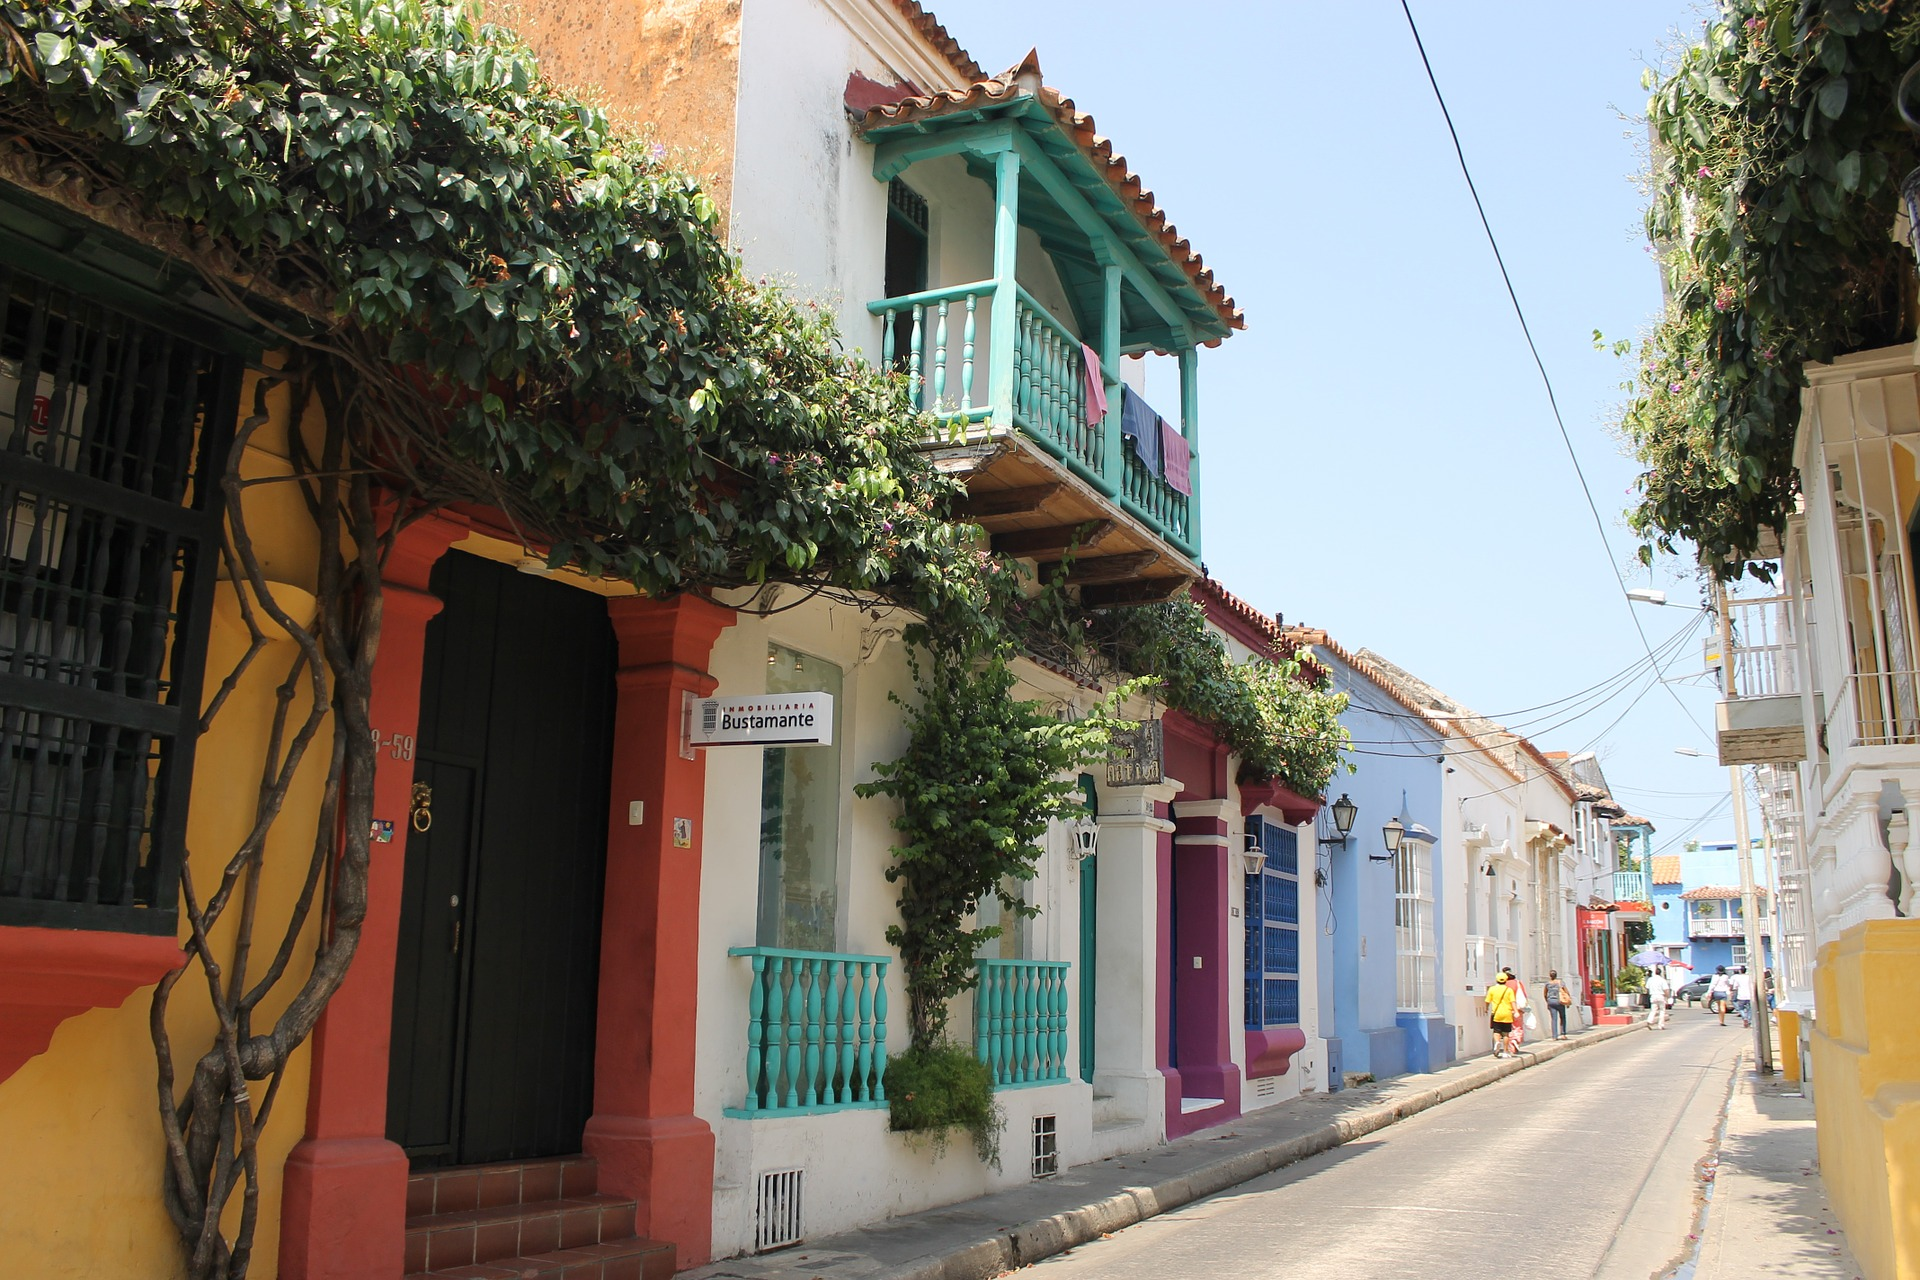 An image of a street in Old Town Cartagena